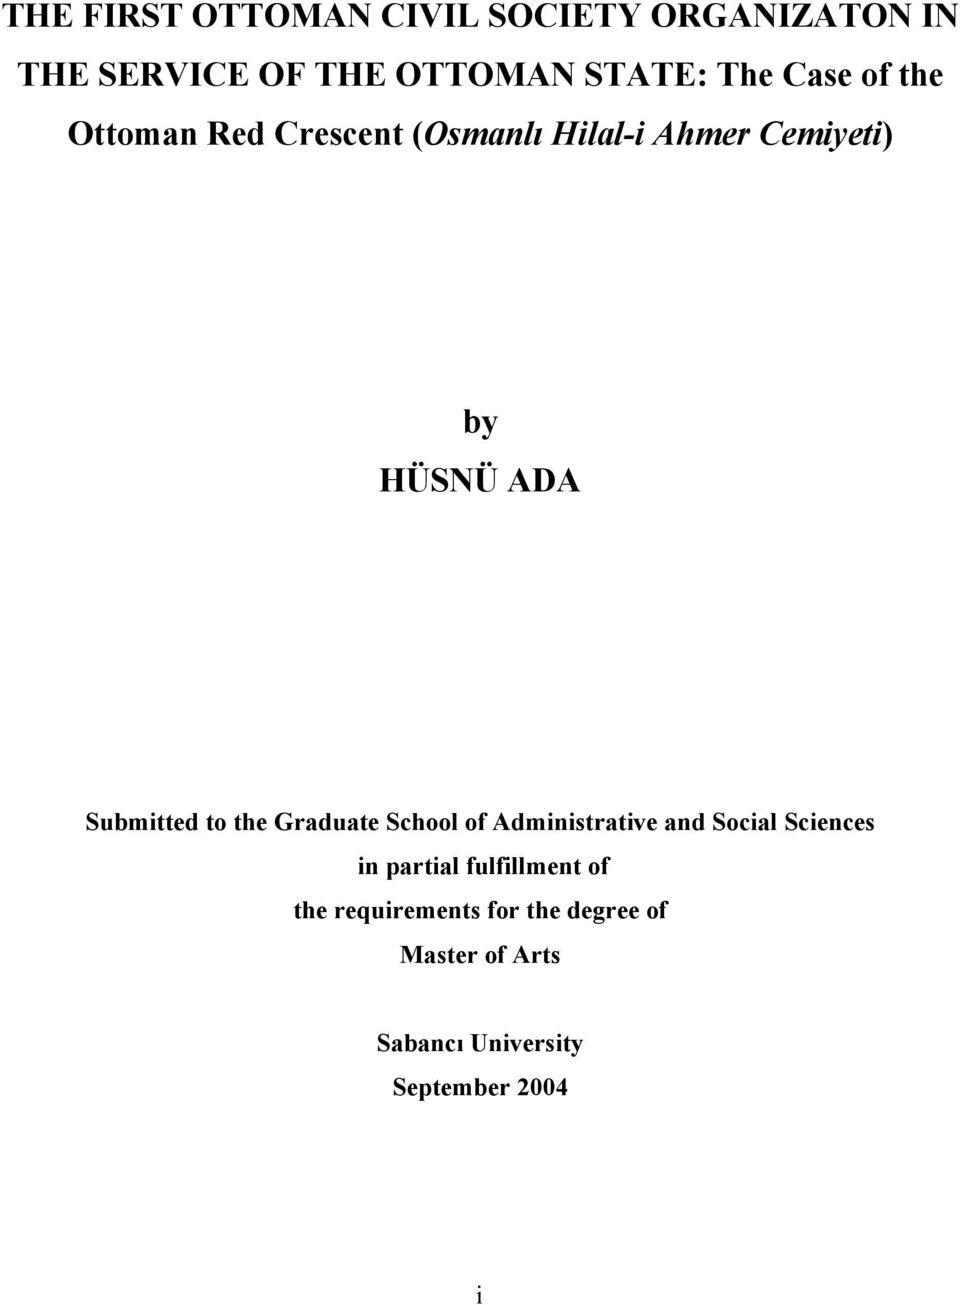 Submitted to the Graduate School of Administrative and Social Sciences in partial